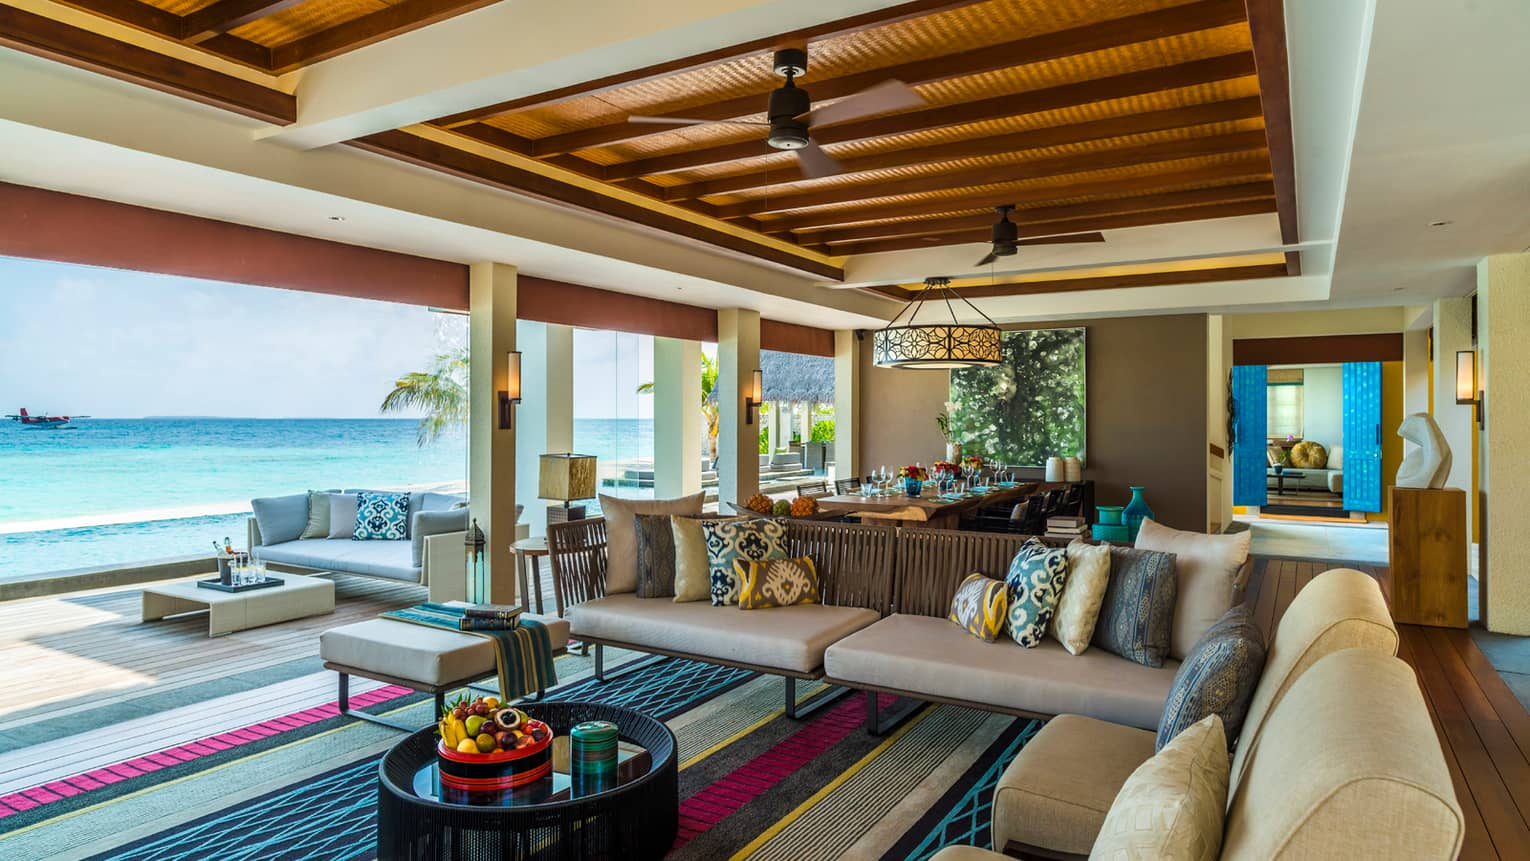 Three-Bedroom Landaa Estate open-air living room sofas, chairs looking out at ocean